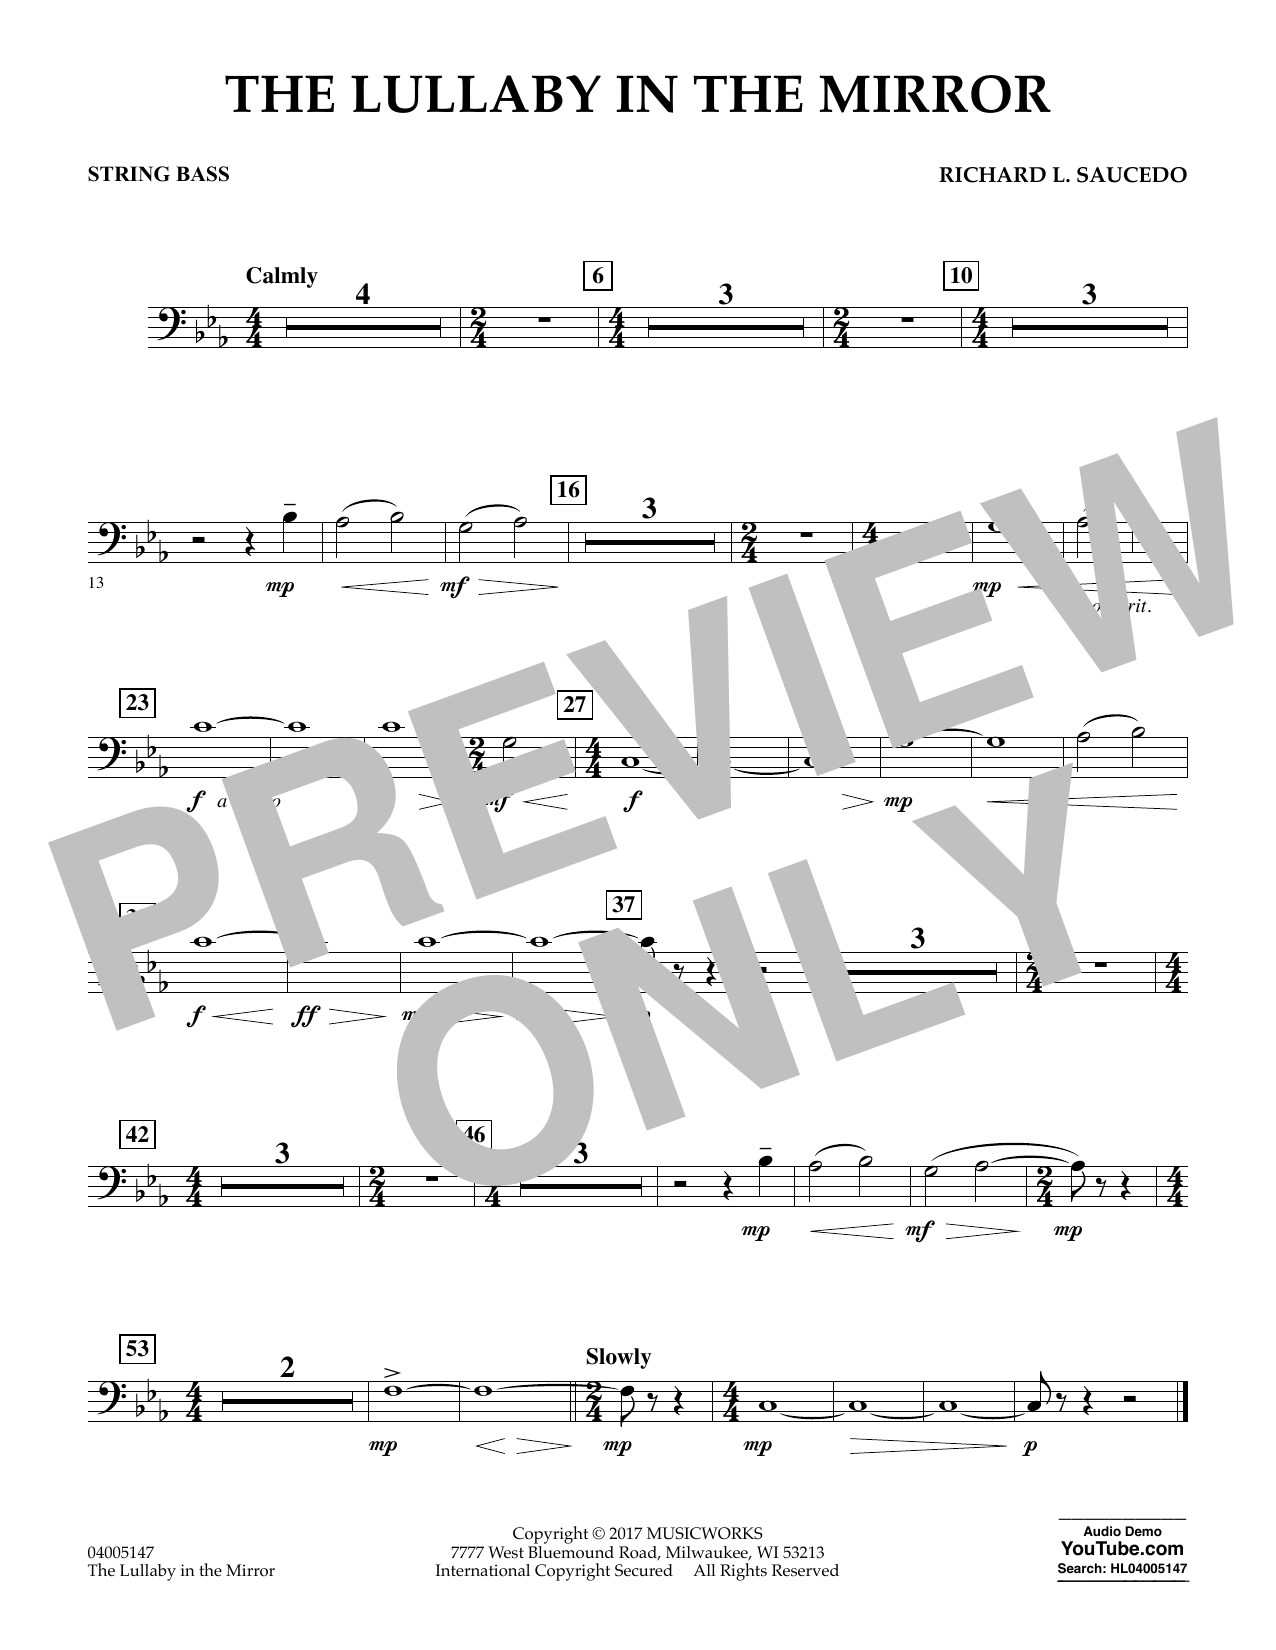 Richard L. Saucedo The Lullaby in the Mirror - String Bass sheet music notes and chords. Download Printable PDF.